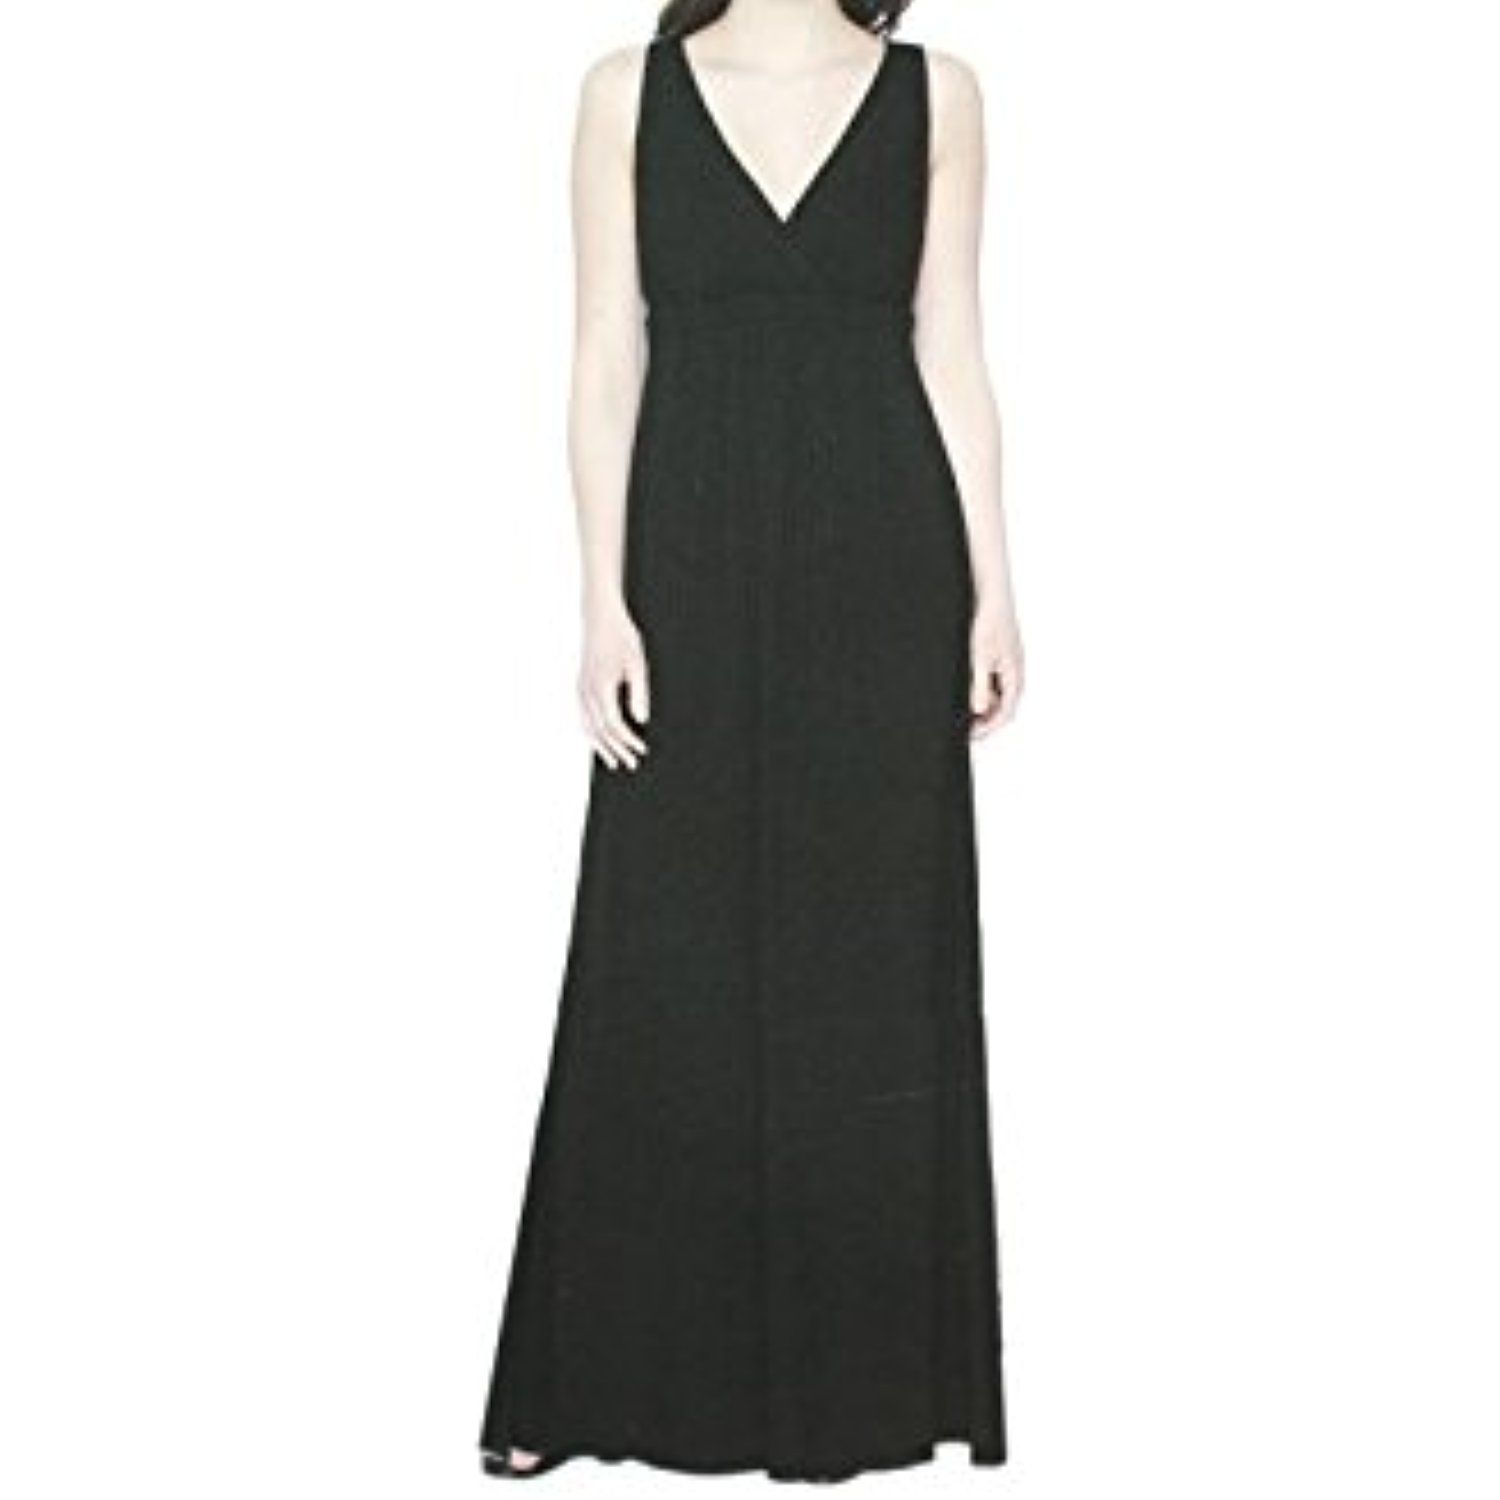 Womenus crossover vneck pull over maxi dress ueueue you can get